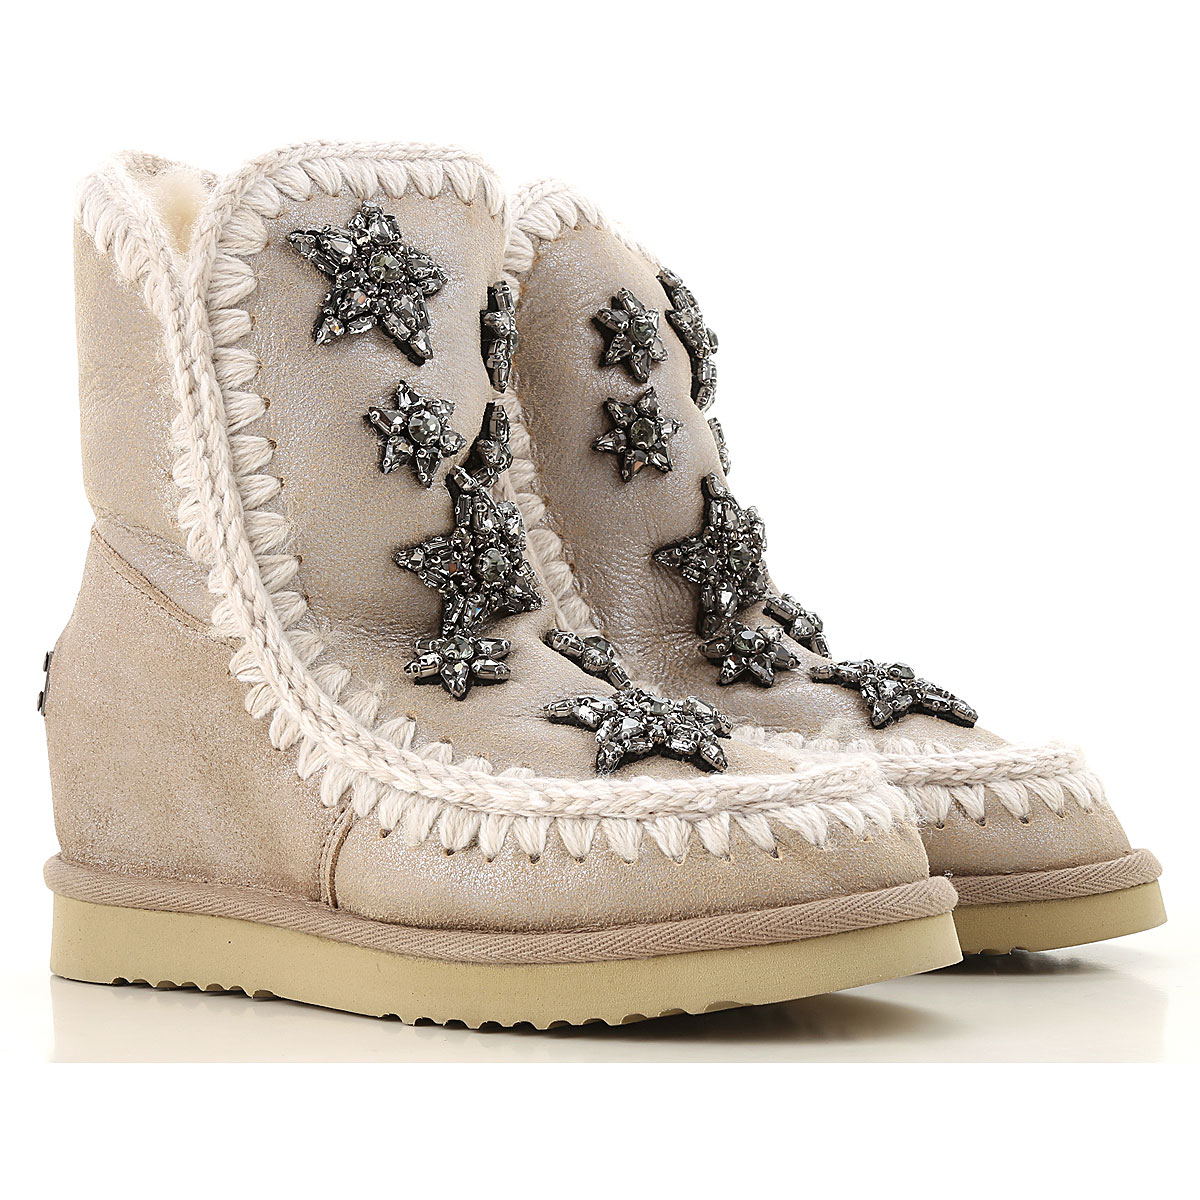 Image of Mou Boots for Women, Booties, Beige, Leather, 2017, EUR 36 - UK 3 - USA 5.5 EUR 37 - UK 4 - USA 6.5 EUR 38 - UK 5 - USA 7.5 EUR 39 - UK 6 - USA 8.5 EUR 40 - UK 7 - USA 9.5